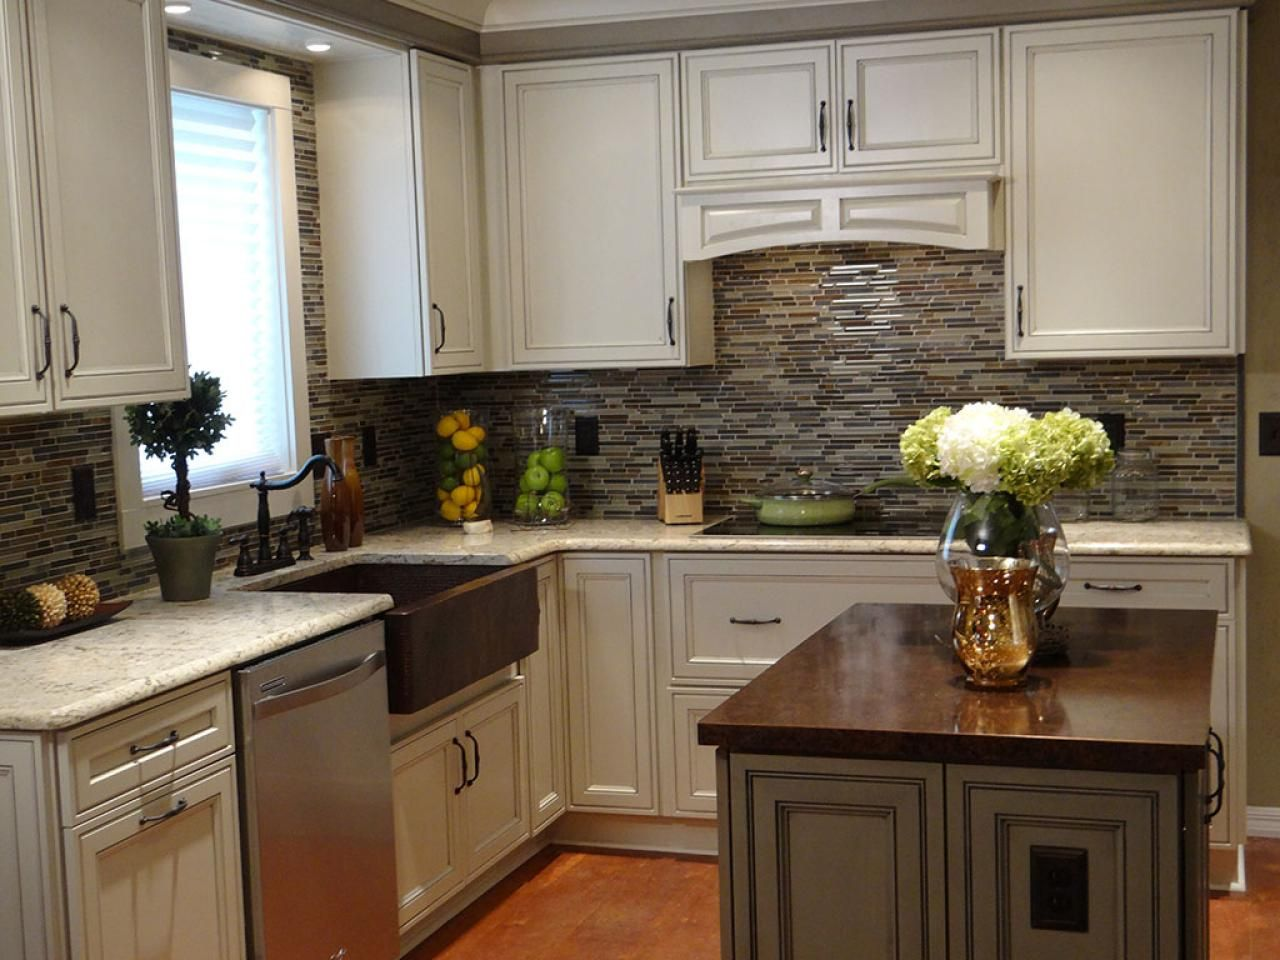 Awesome 20 Small Kitchen Makeovers By HGTV Hosts Design Inspirations